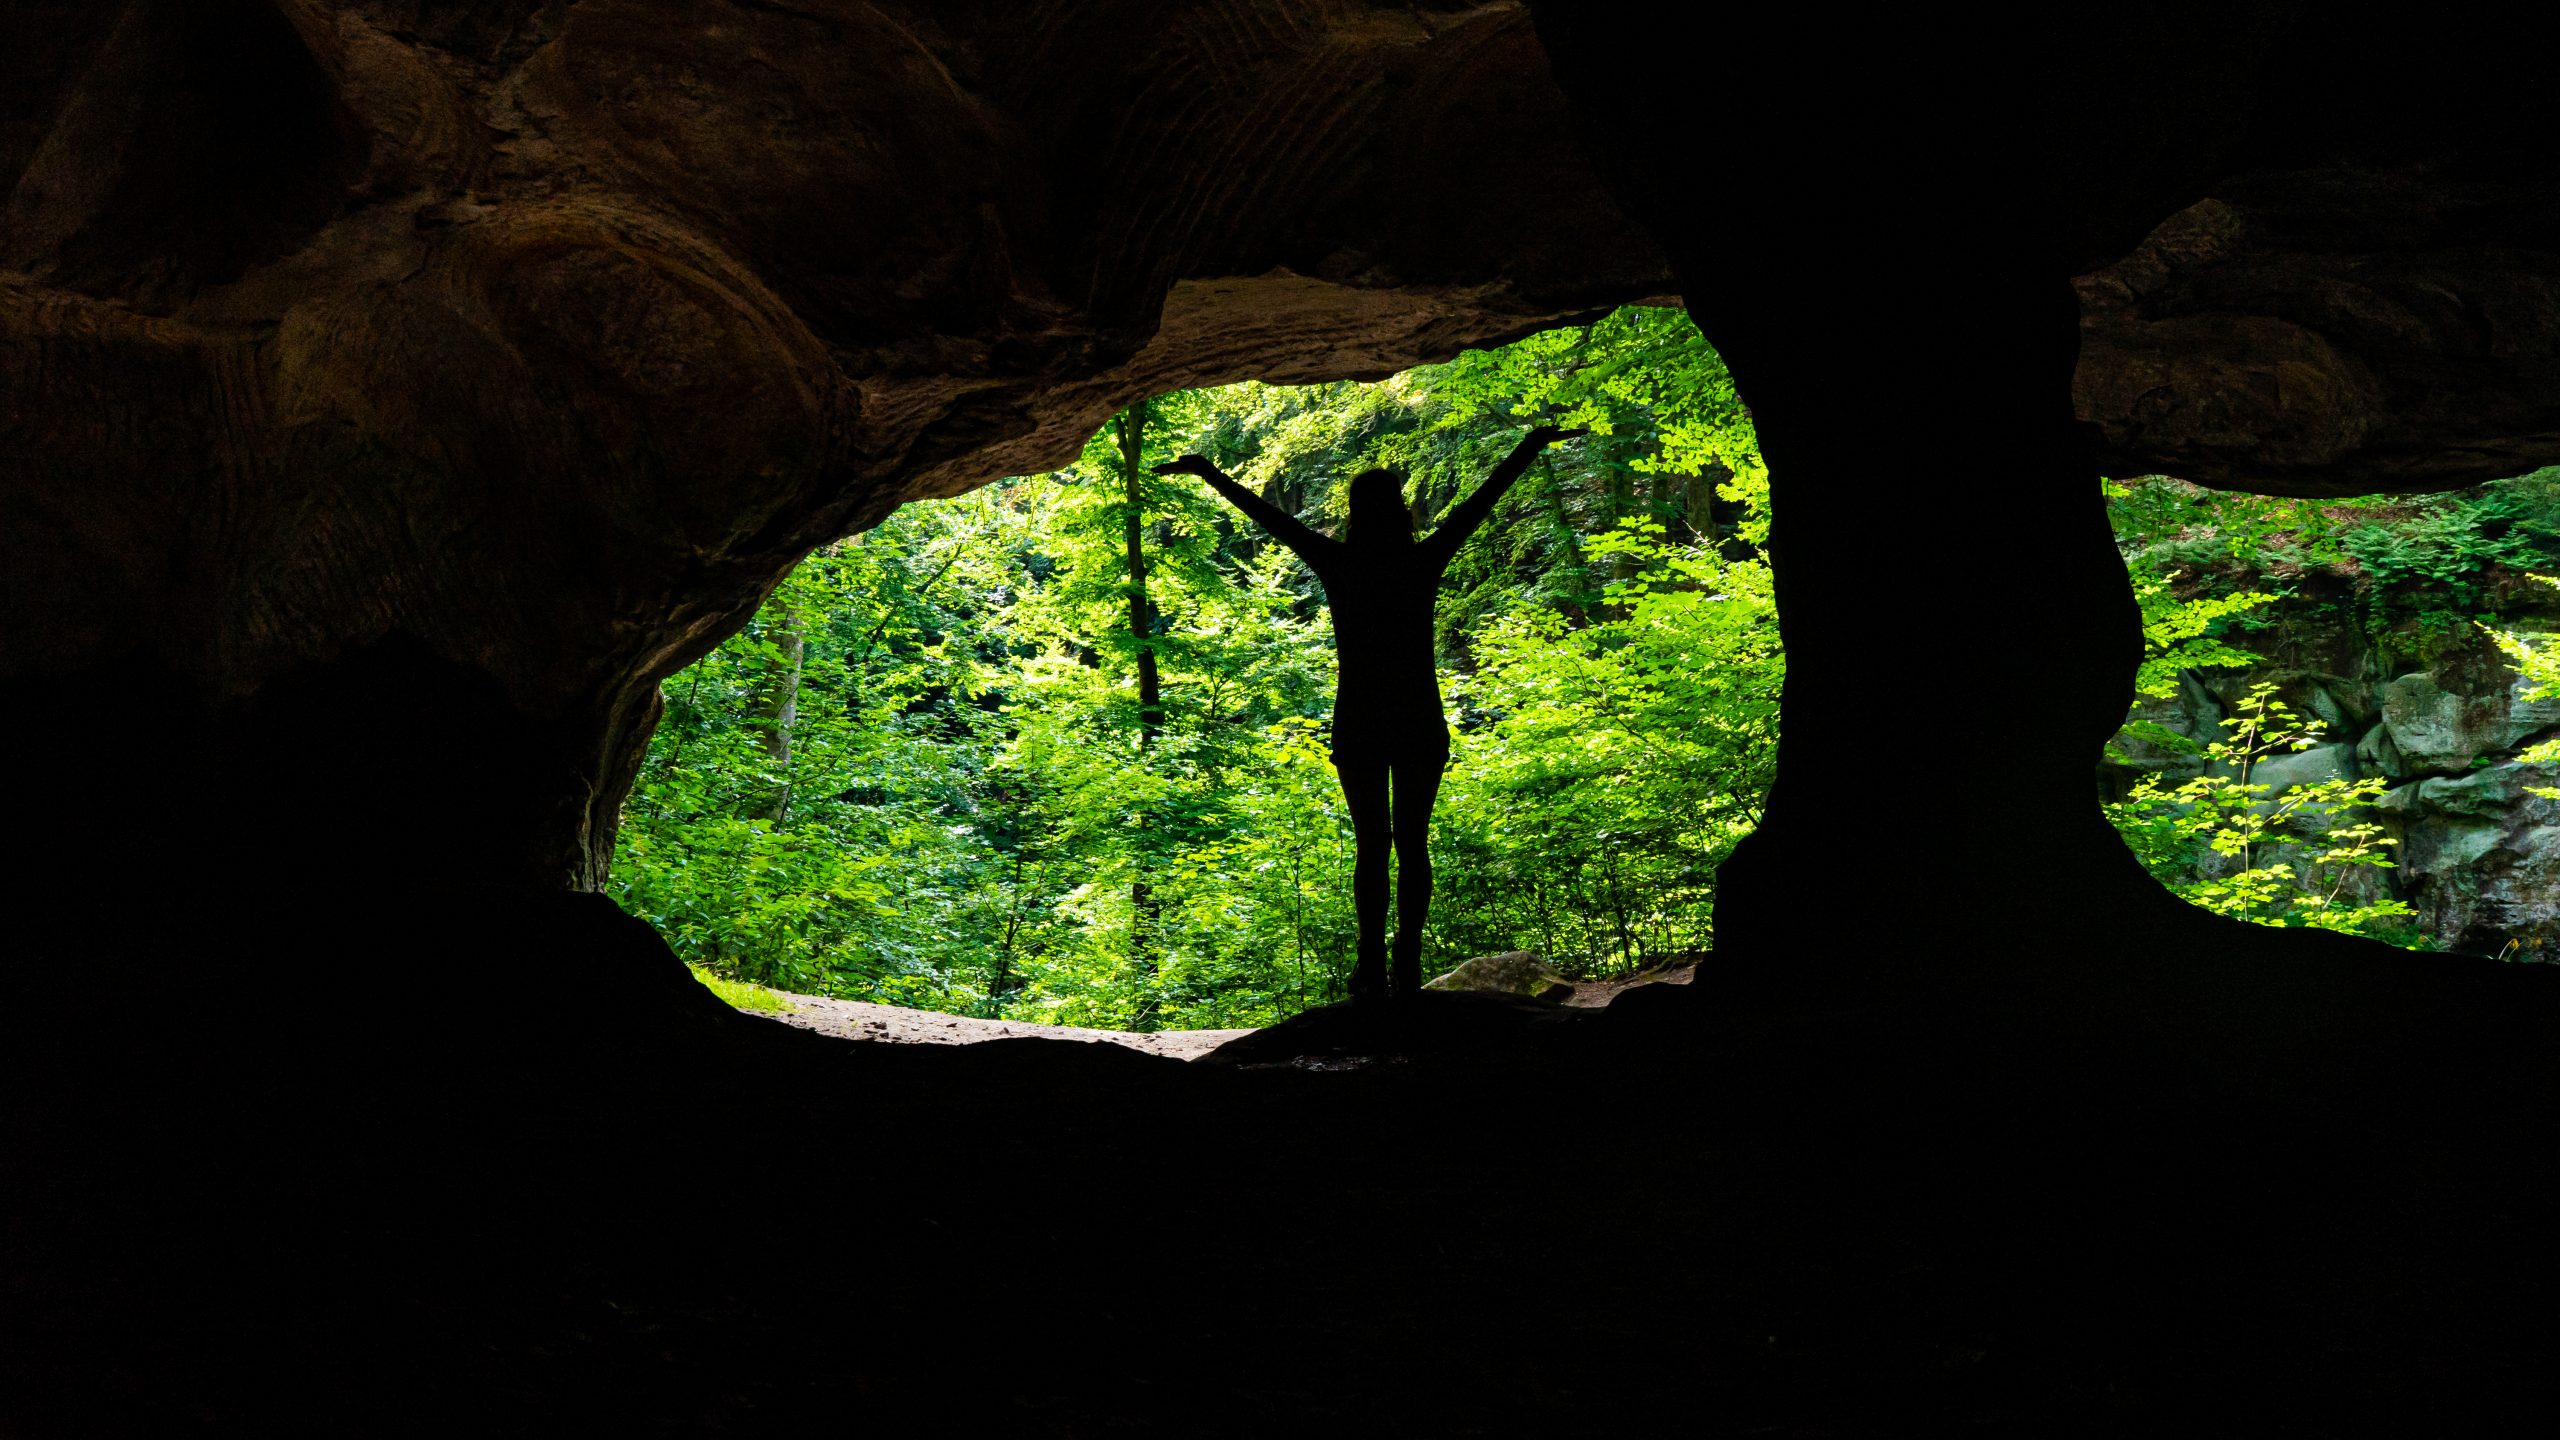 Jessica-silhouet-in-Hohllay-Cave-Luxemburg